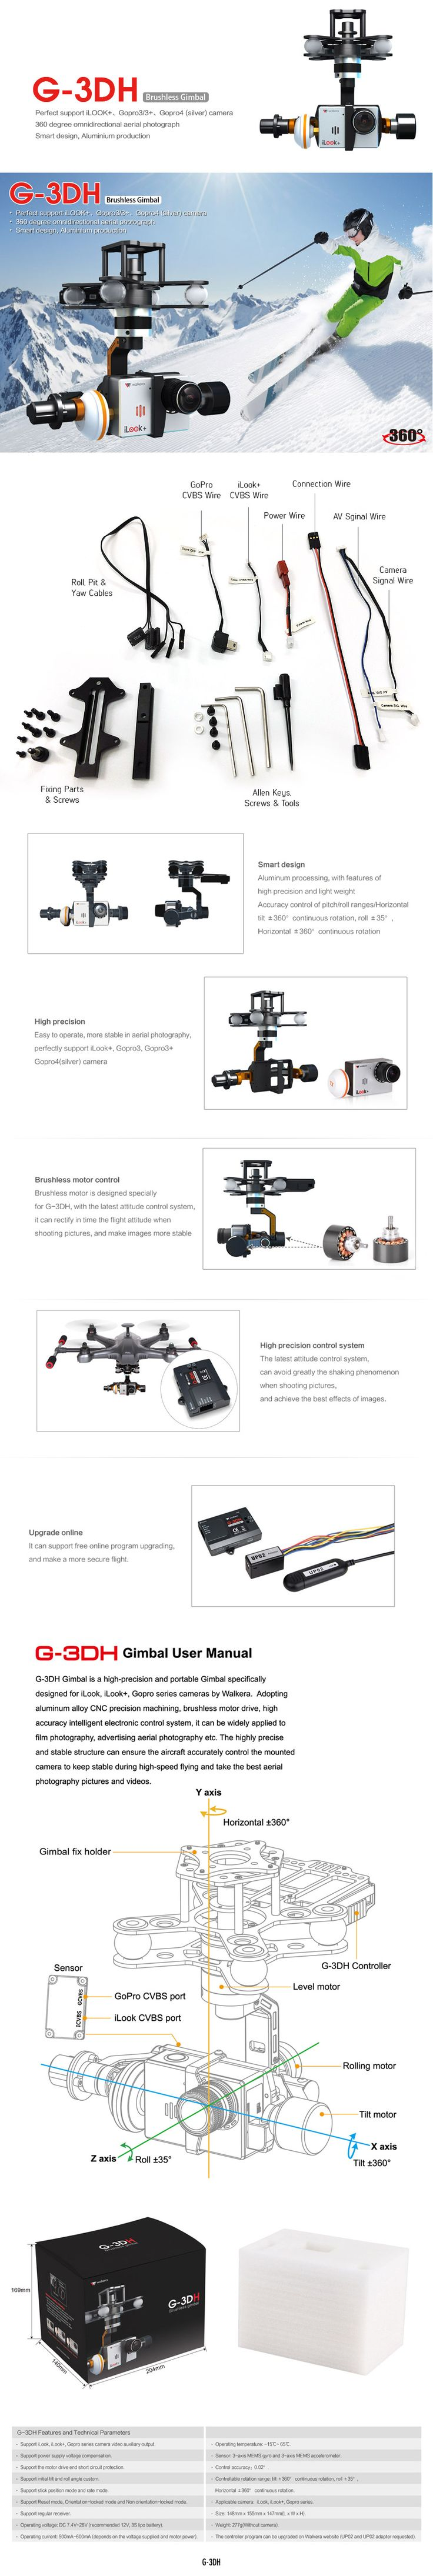 [Support iLook+/GoPro3/3+, GoPro4 (Silver) camera] WALKERA G-3DH 3-Axis Brushless Camera Gimbal With 360 degree omnidirectional aerial video photography. For pricing & info, pls see http://shop.rotor.com.sg/show-detail.asp?prodid=%7BC0E7C11C-D0A9-4F55-9DE4-35547D98C50A%7D&pn=#.VSjg8PmUd5d